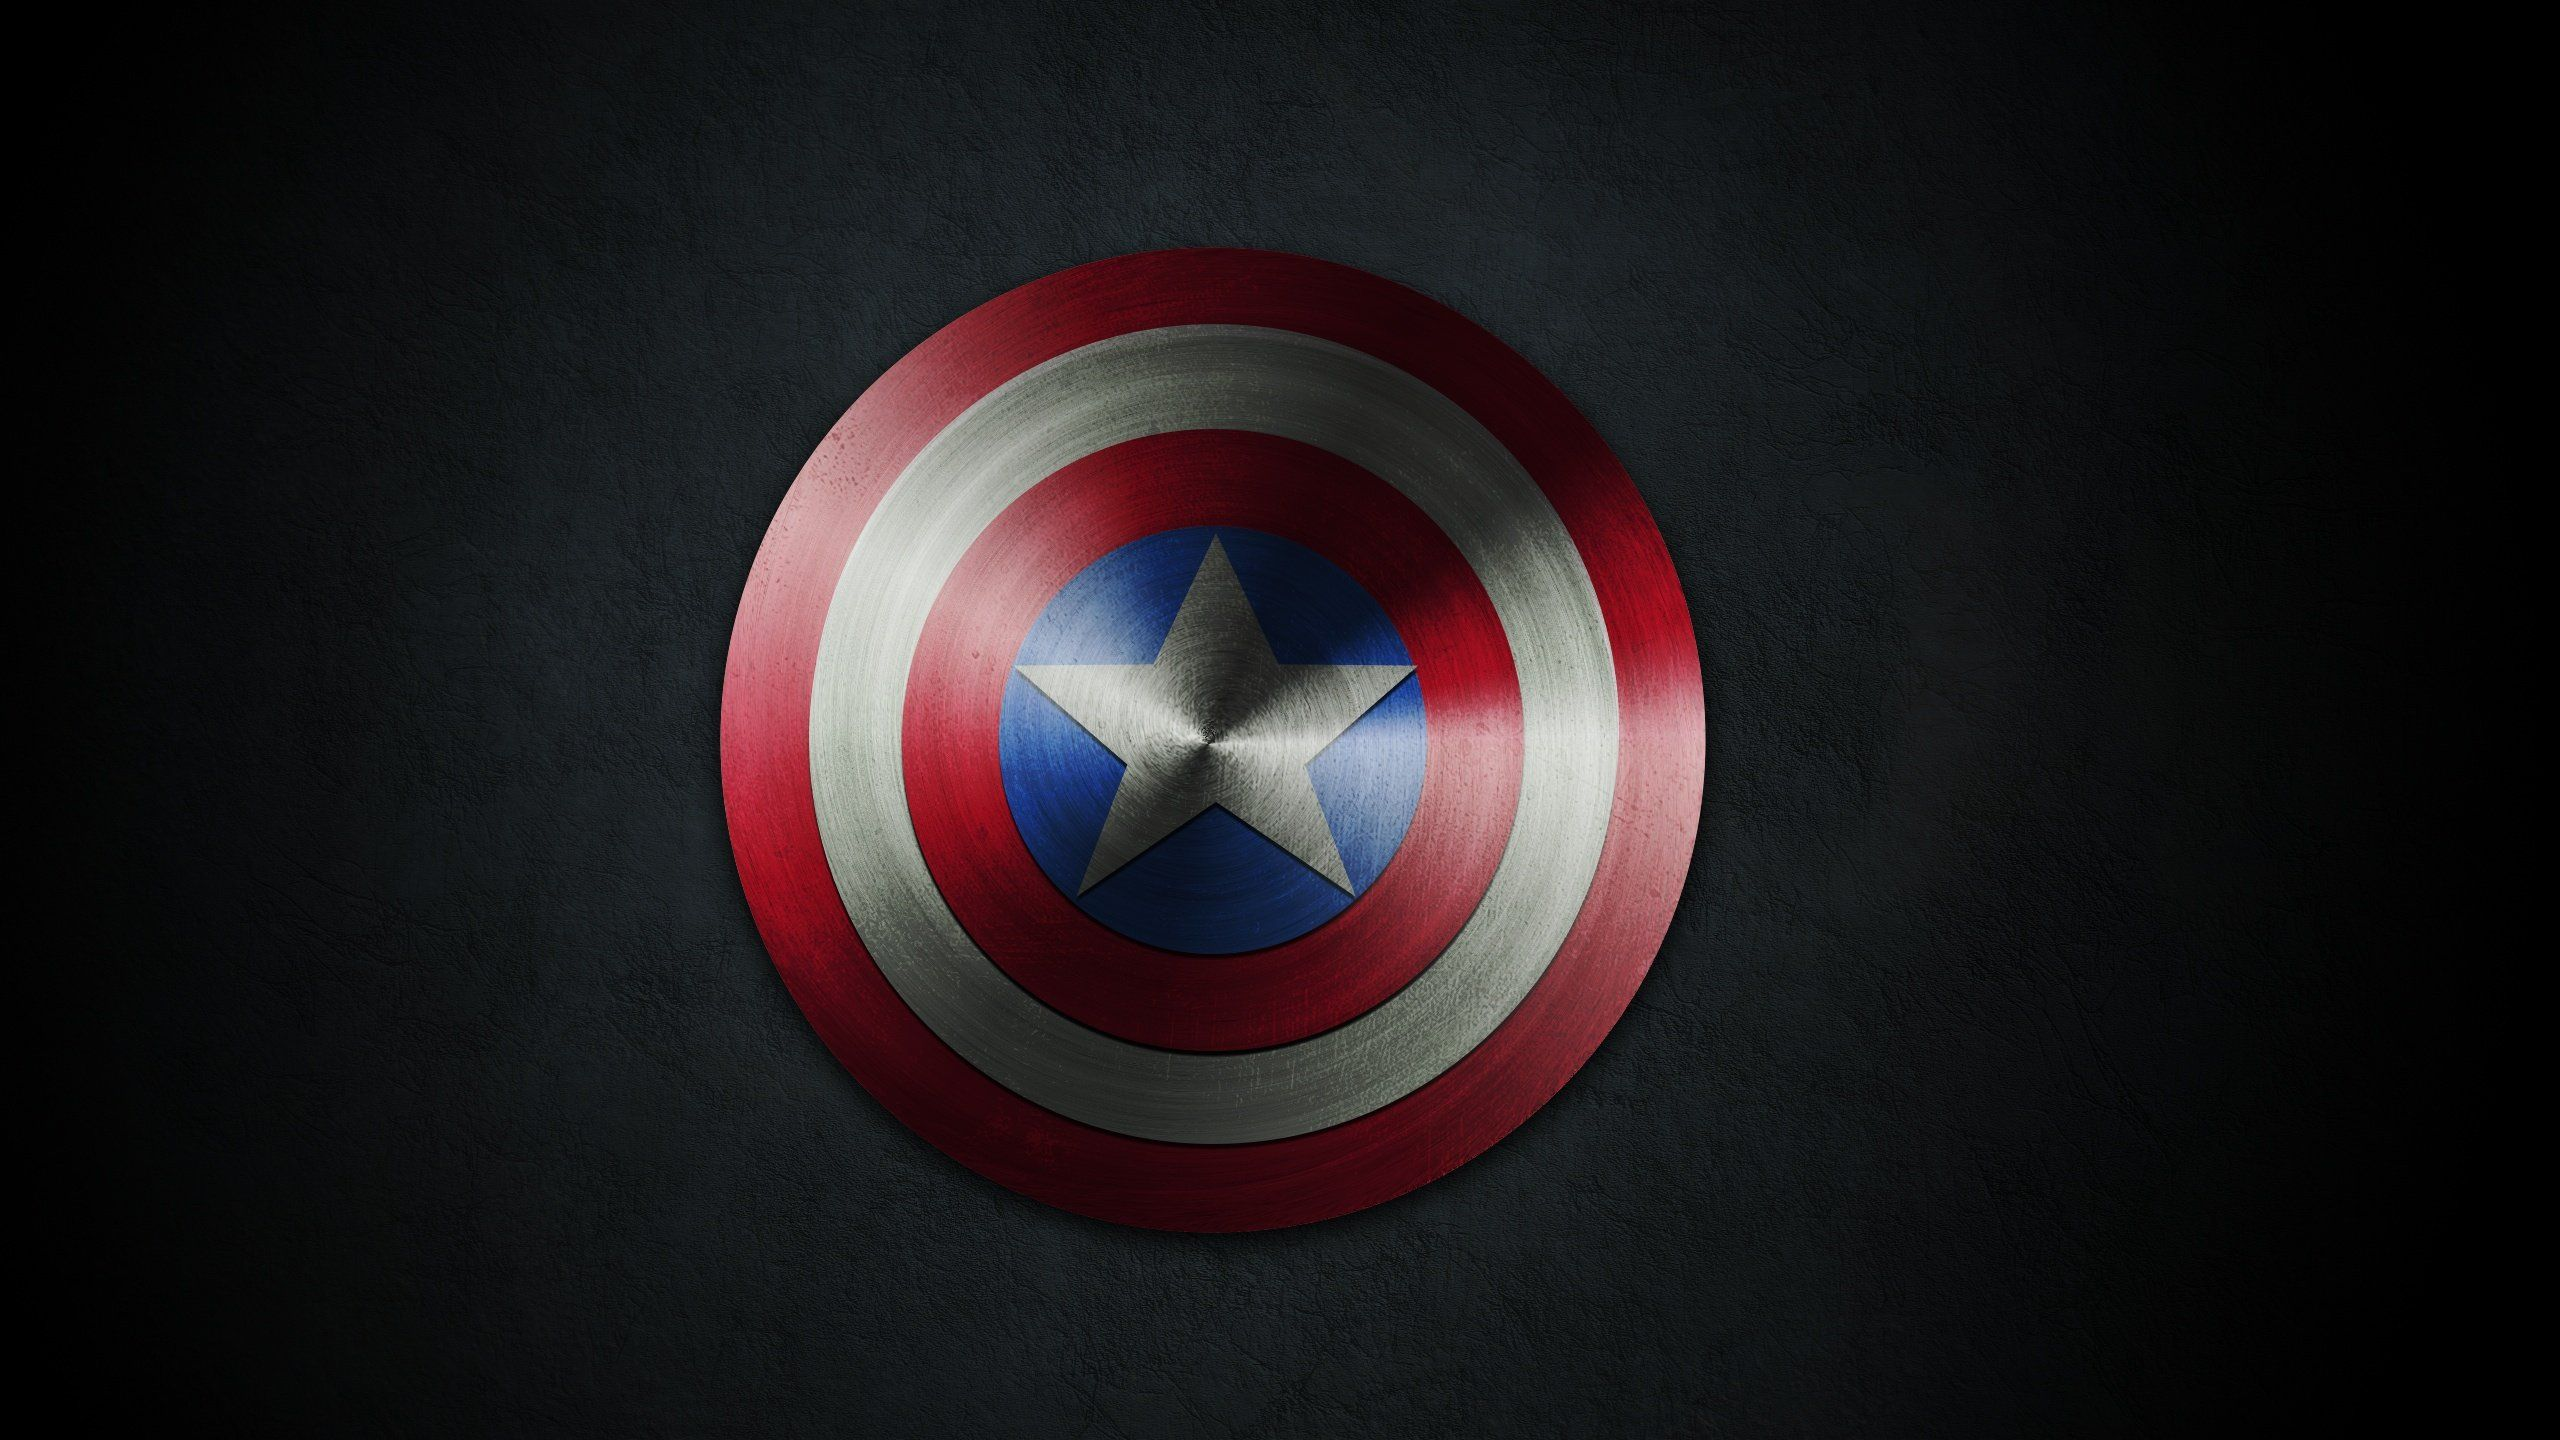 Captain America Shield Wallpapers HD Logo Brands Wallpaper